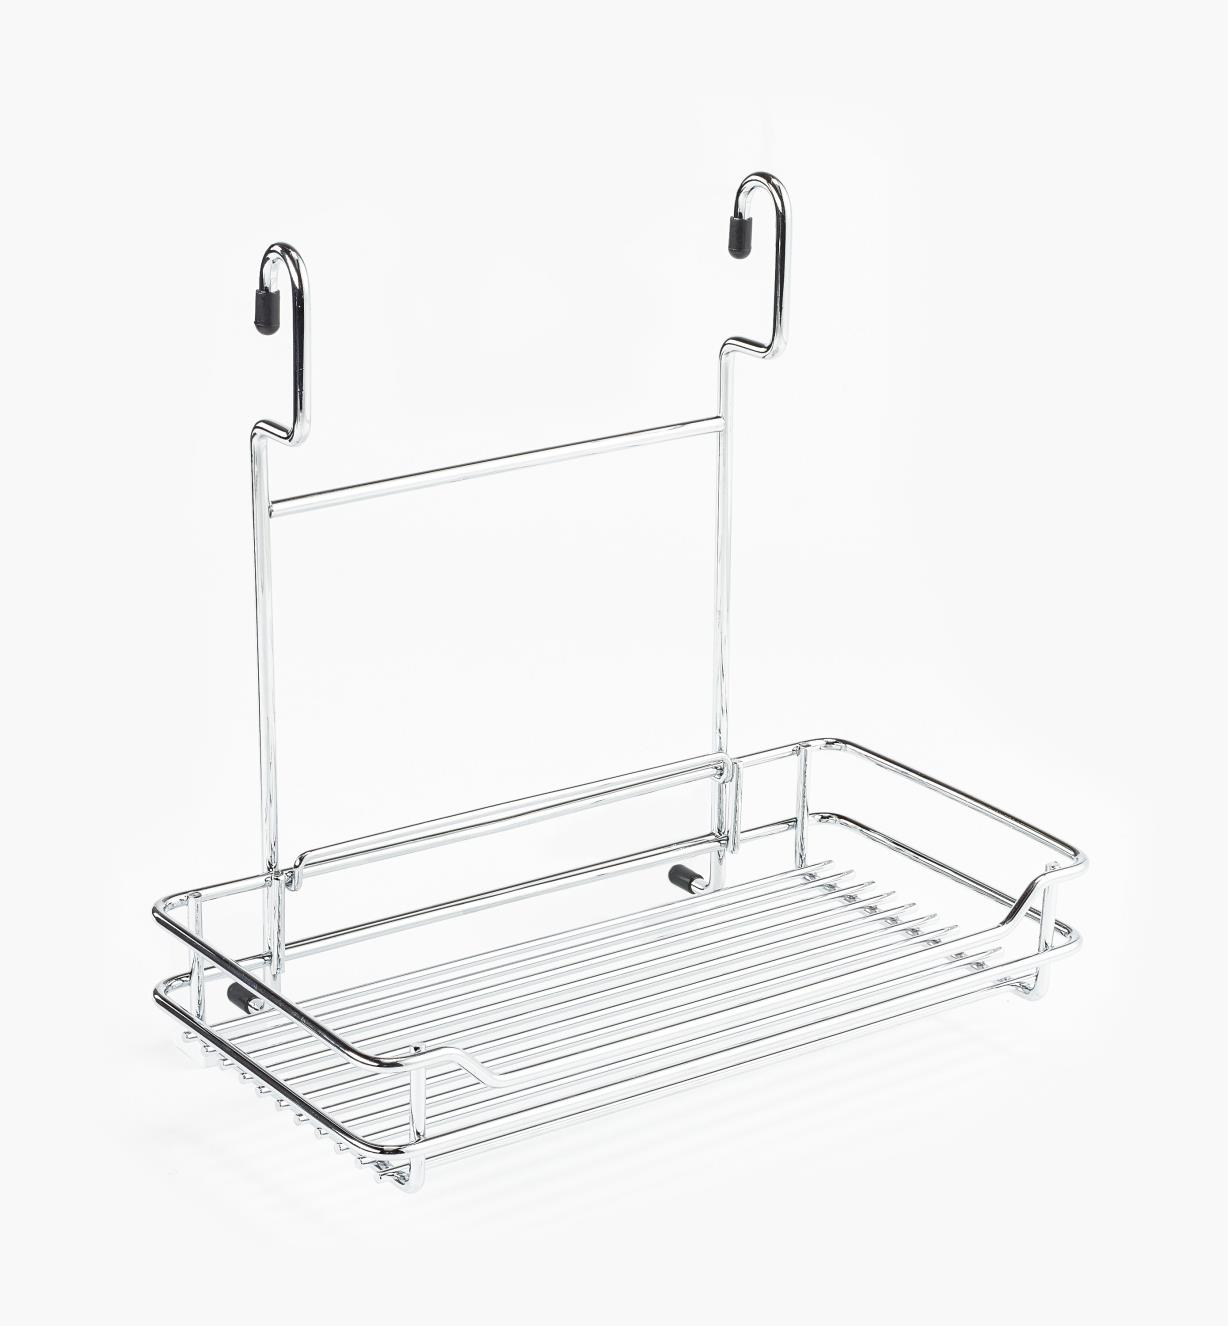 12K3430 - Multi-Purpose Rack, 300mm